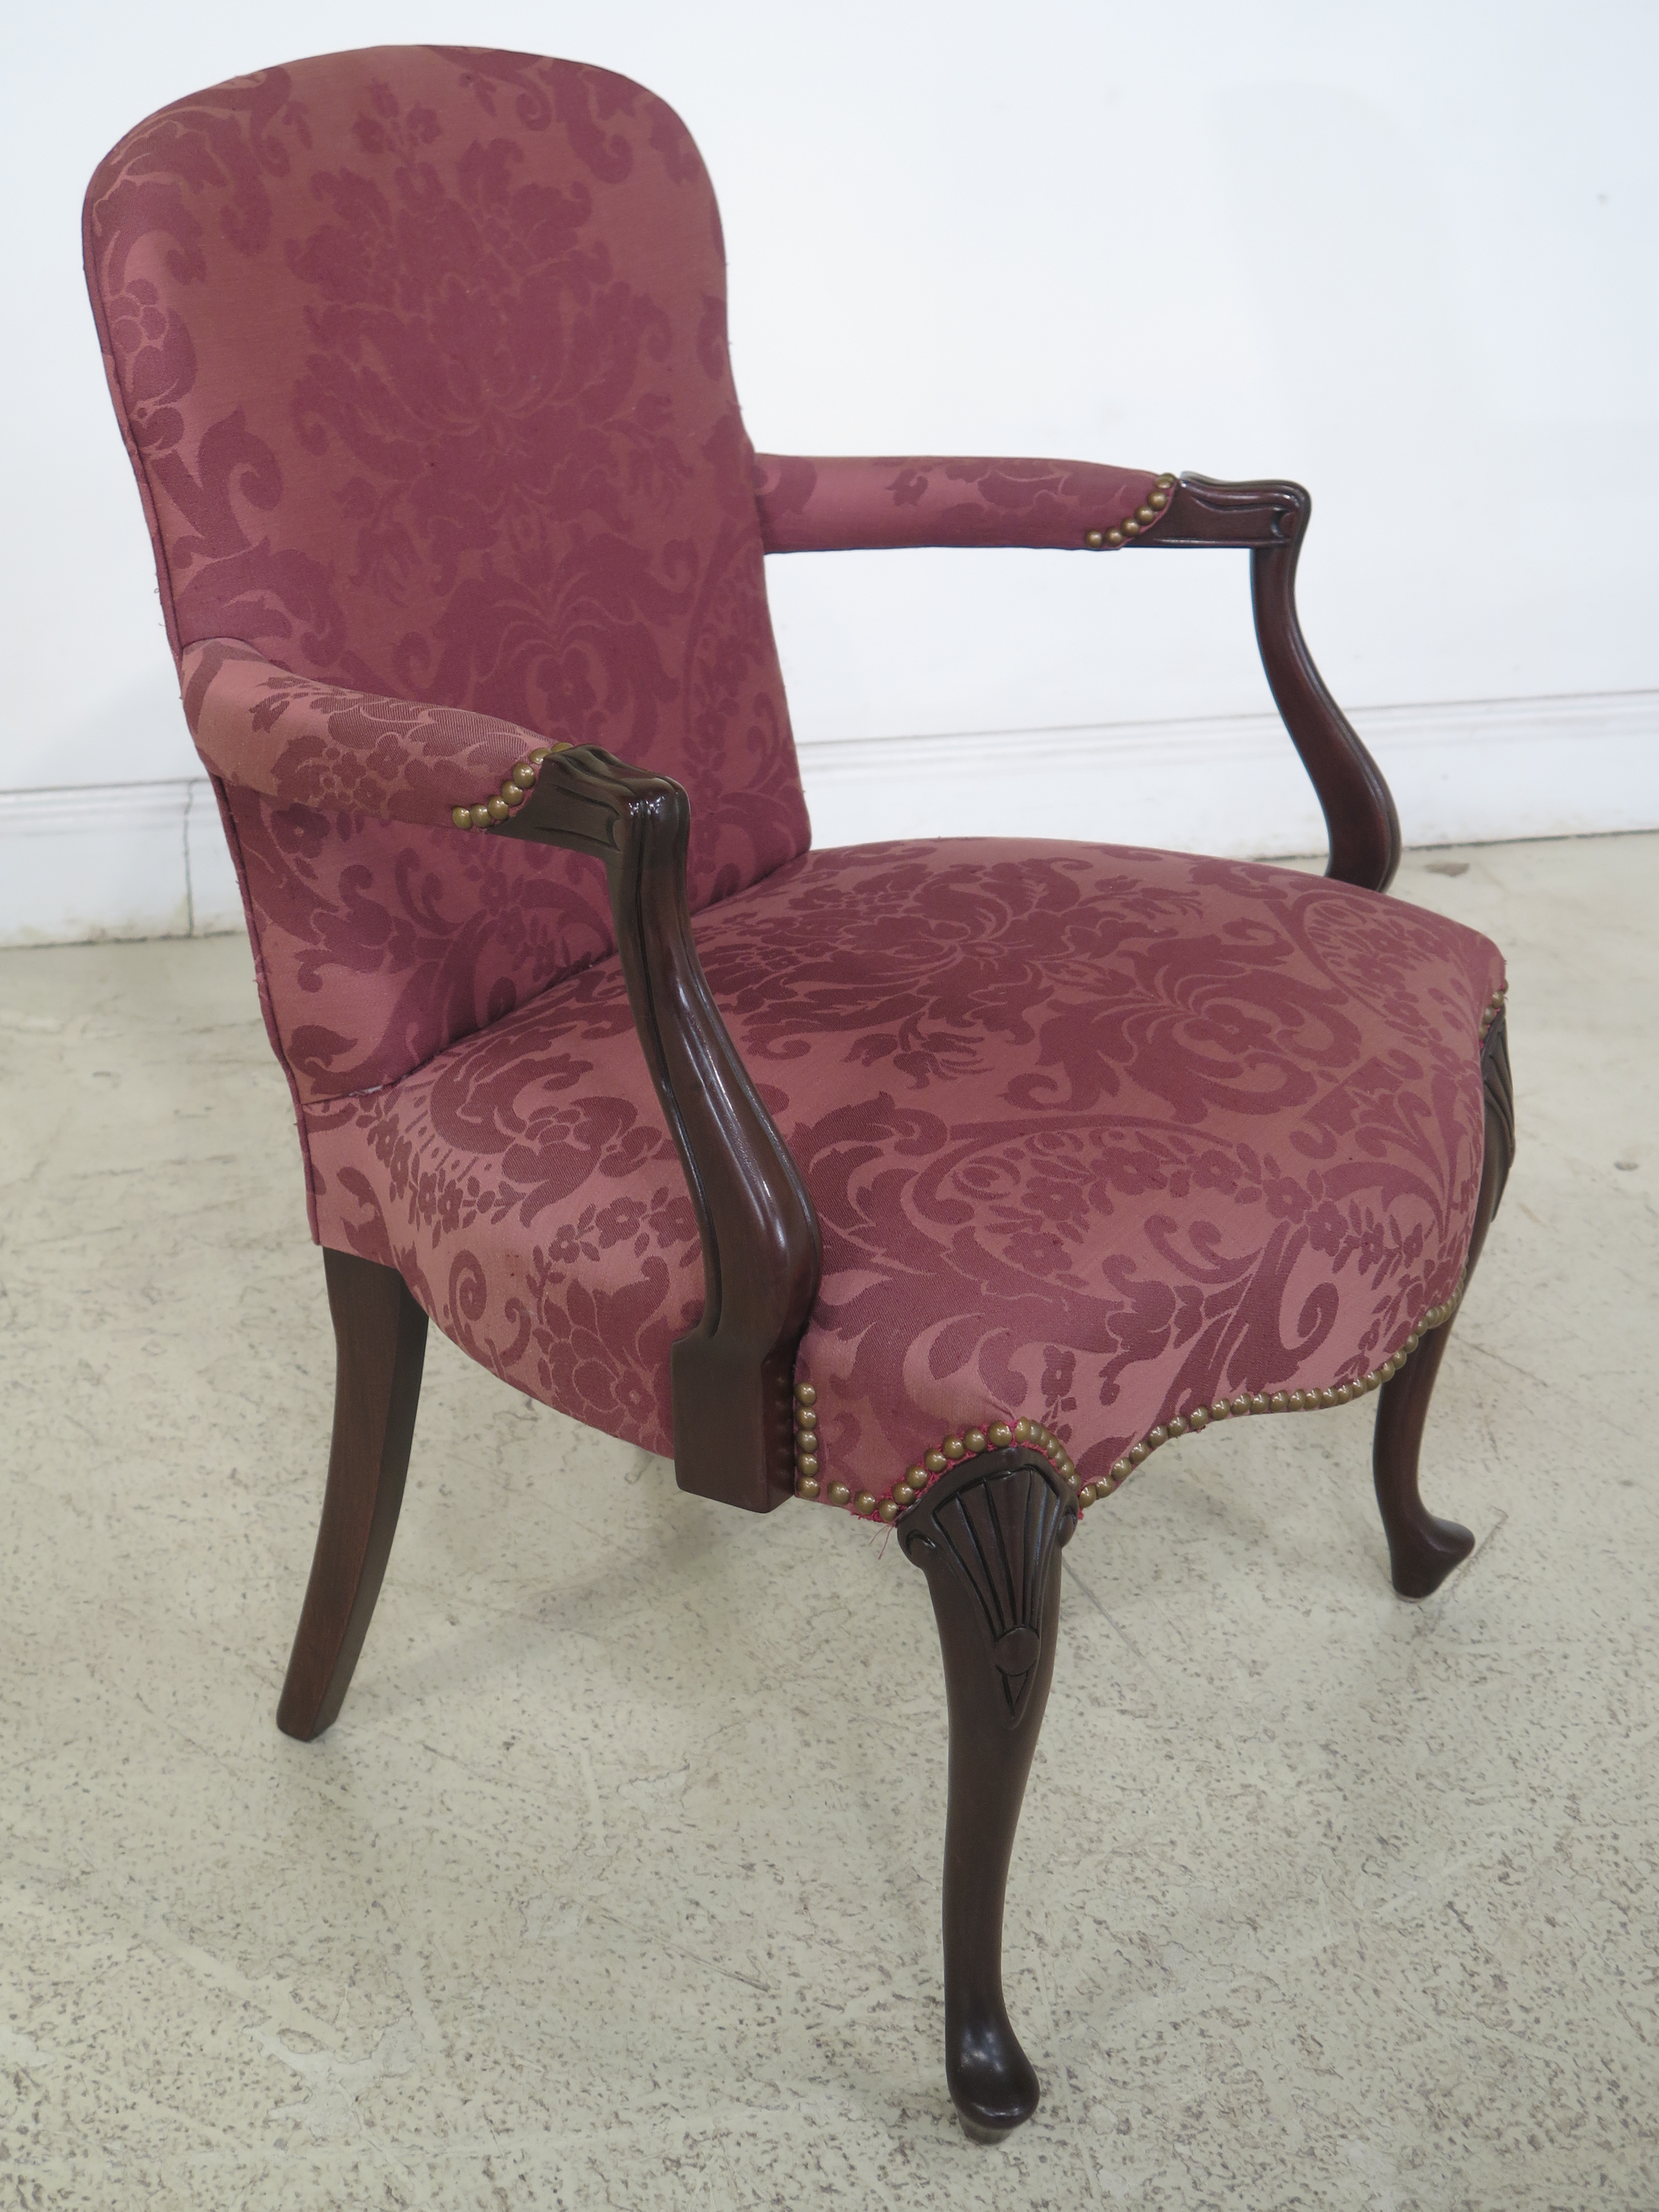 Beau Hickory Chair Co. Queen Anne Mahogany Damask Armchair   Image 5 Of 13